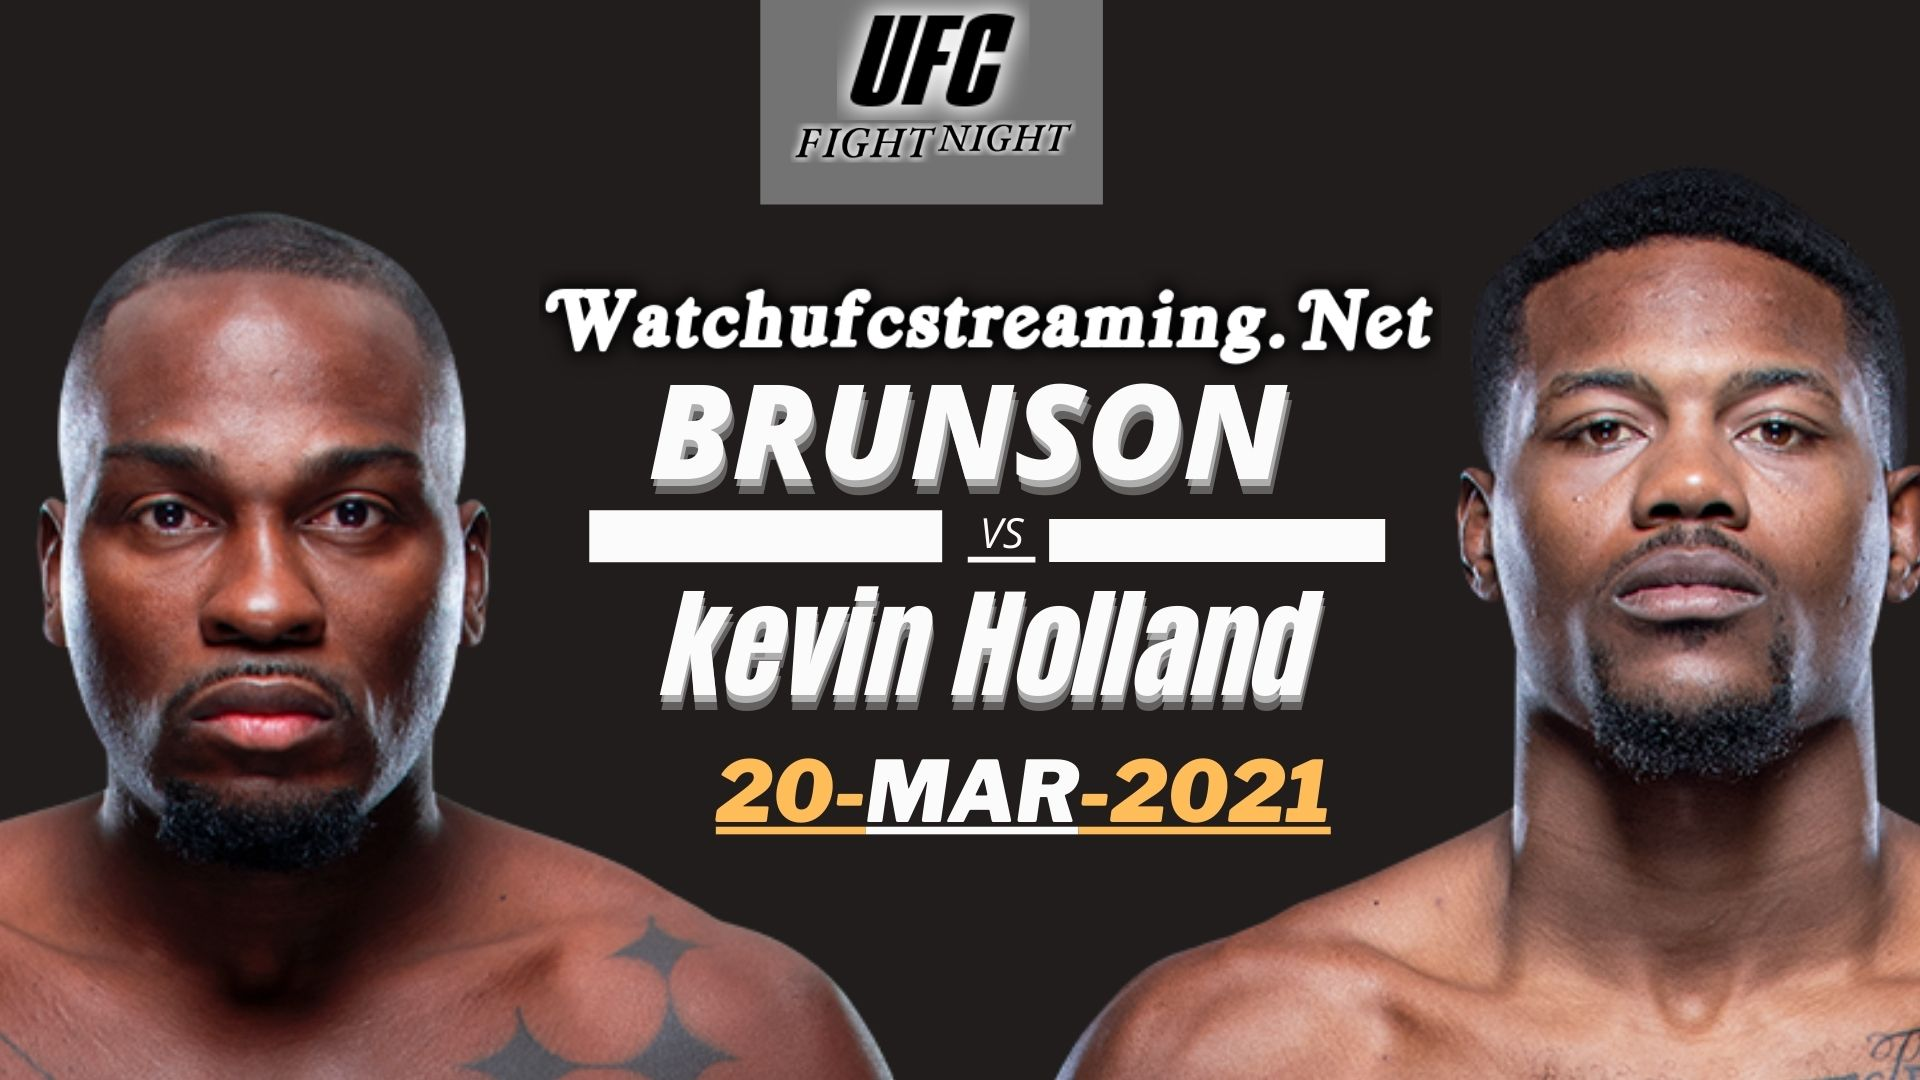 Derek Brunson Vs Kevin Holland Highlights 2021 | UFC Fight Night